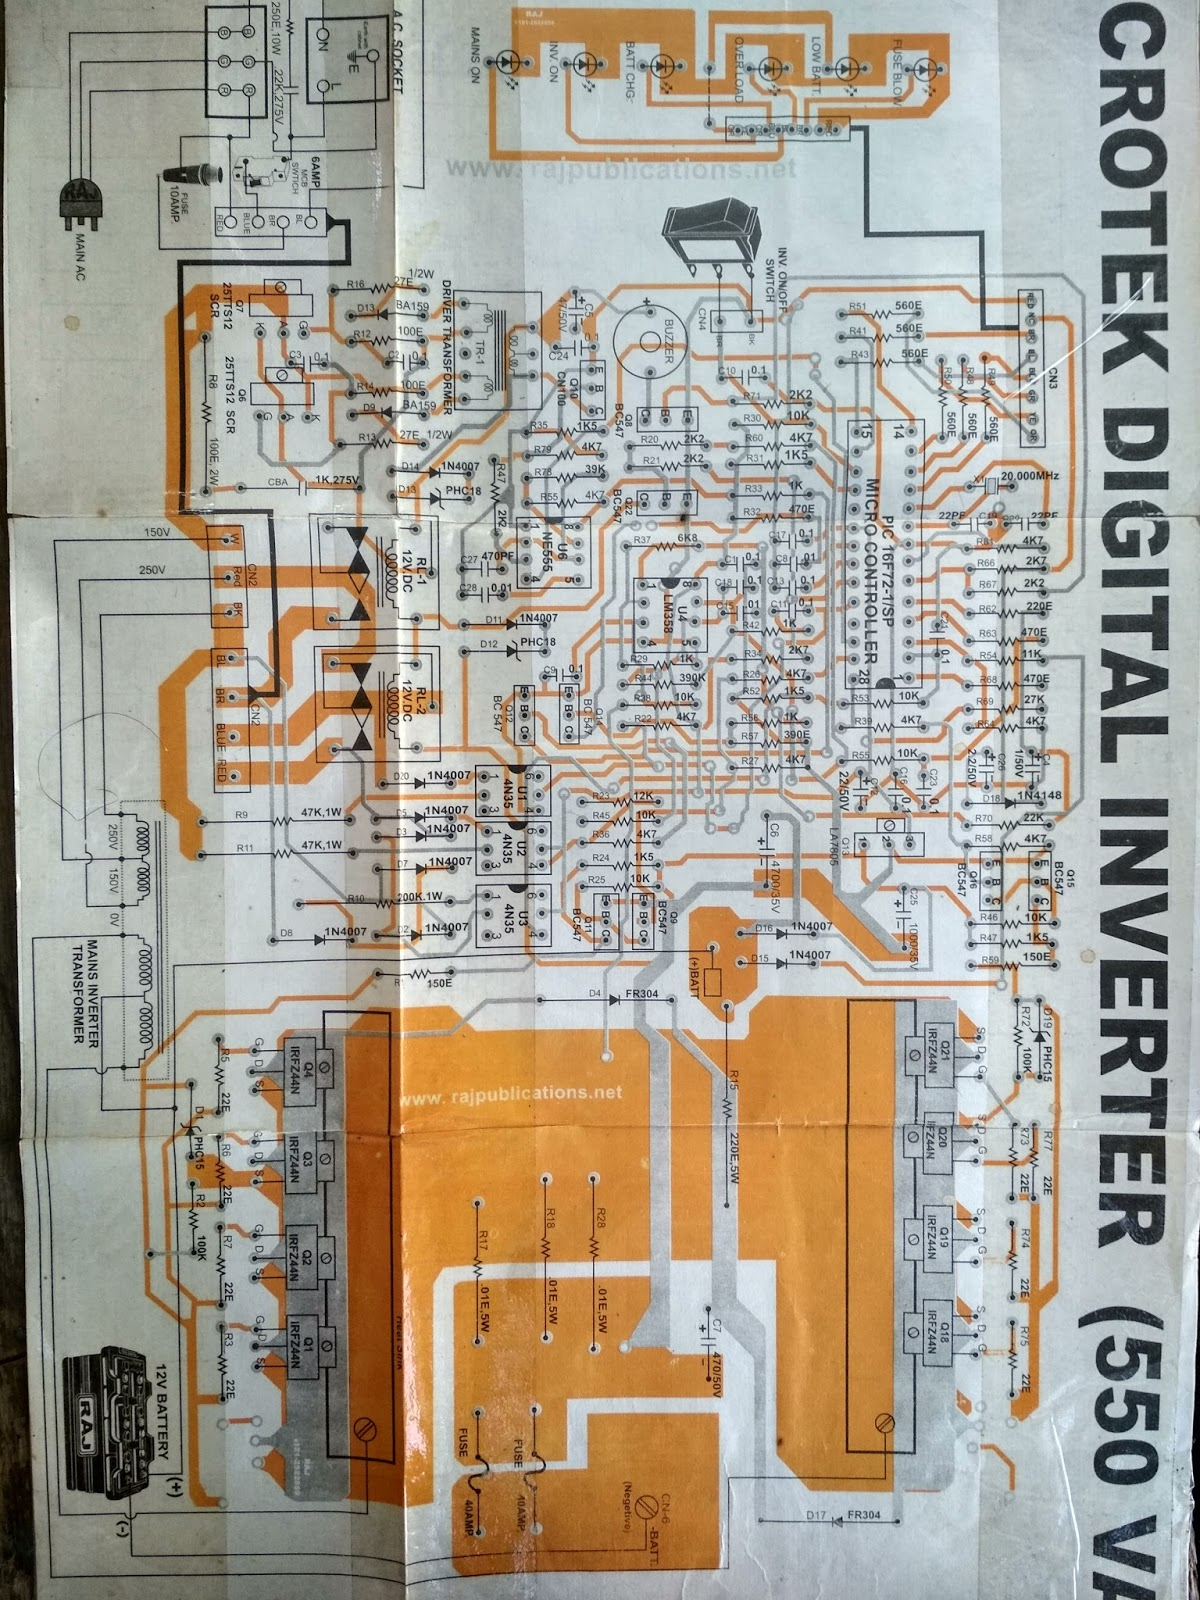 Pure sinewave inverter diagram microtek digital inverter diagram hd microtek inverter 550650750 875 full circuit diagram with micro ic pin details asfbconference2016 Choice Image